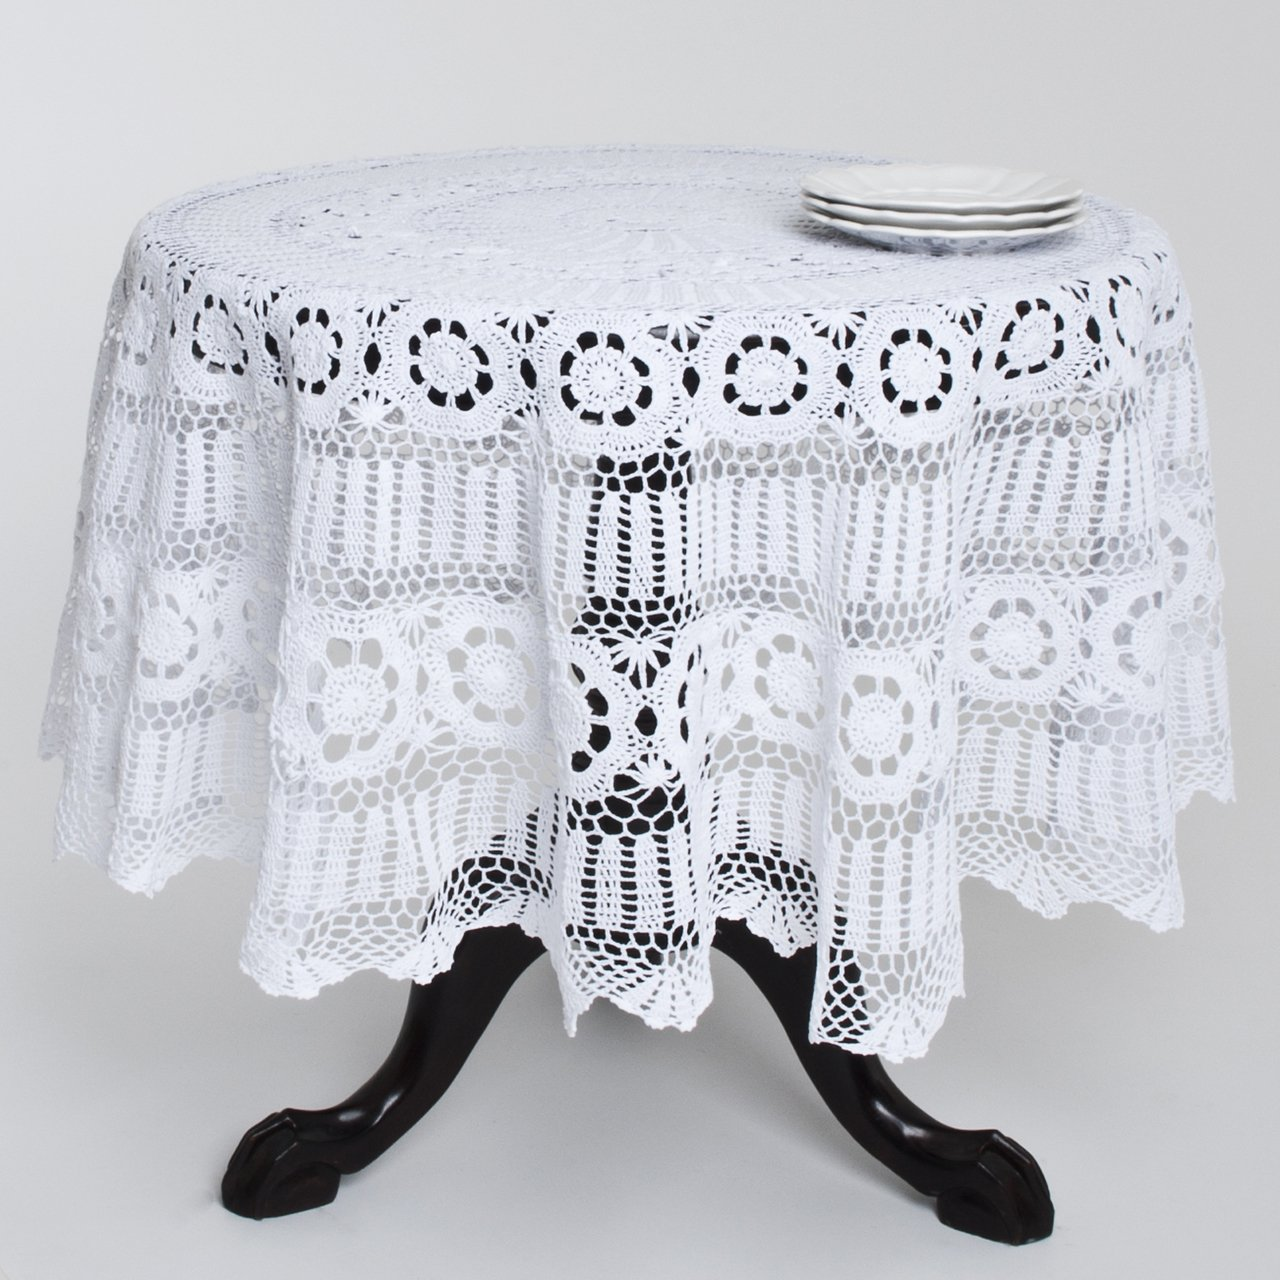 Christmas Tablescape Décor - Handmade cotton crochet lace round tablecloth also available in other table sizes